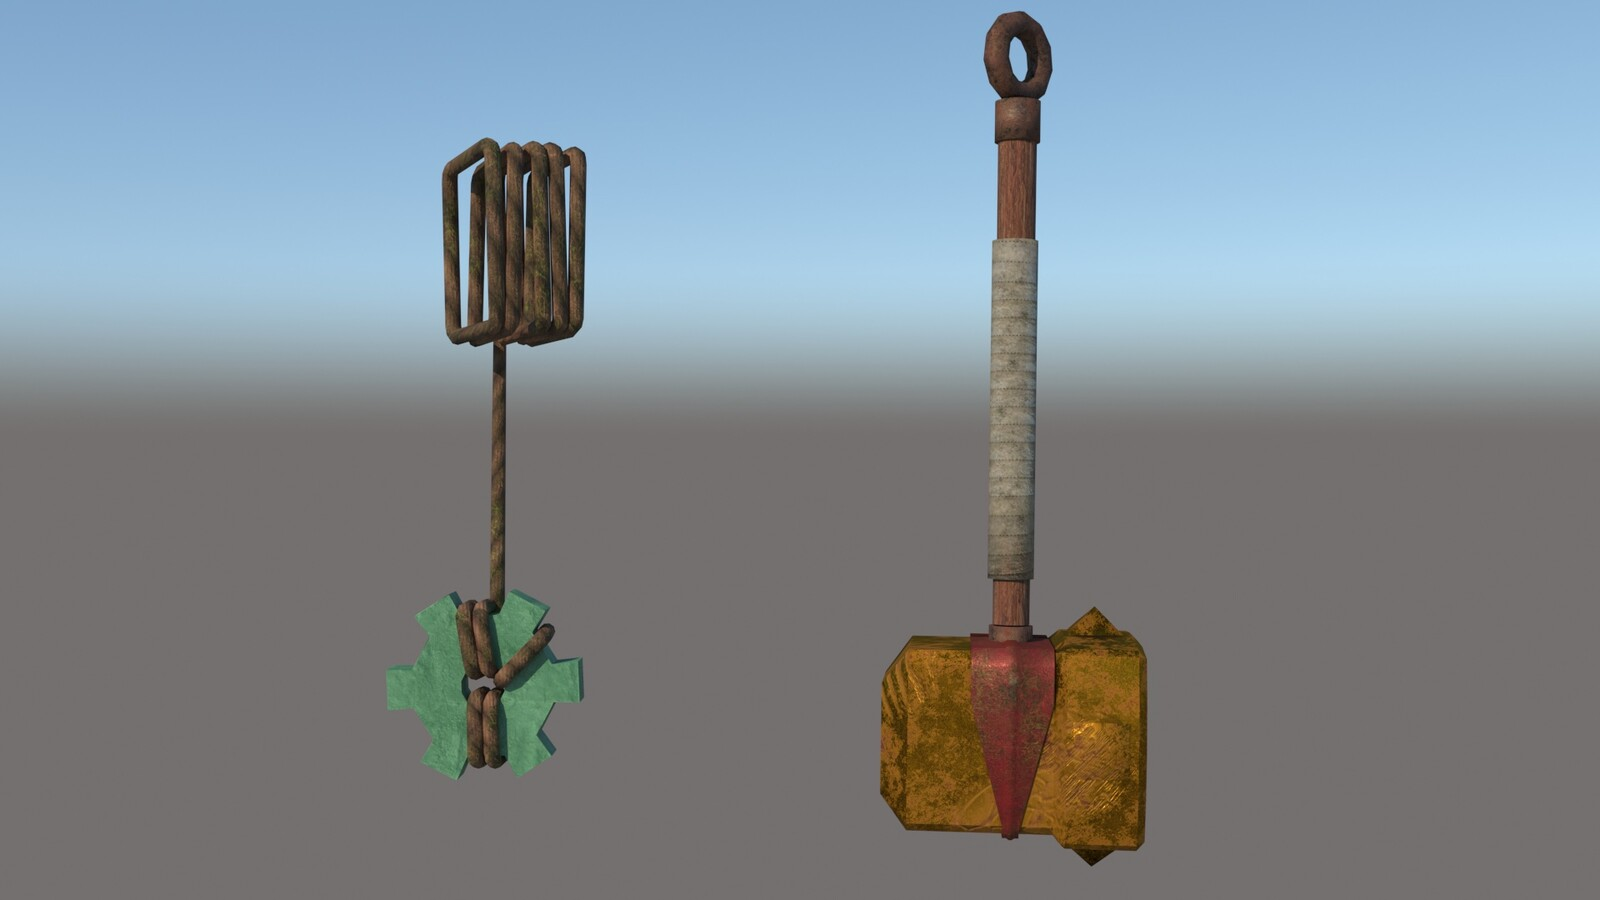 Cael Hammer and Pendulum of the Kid (for the game Bastion) used and rusty